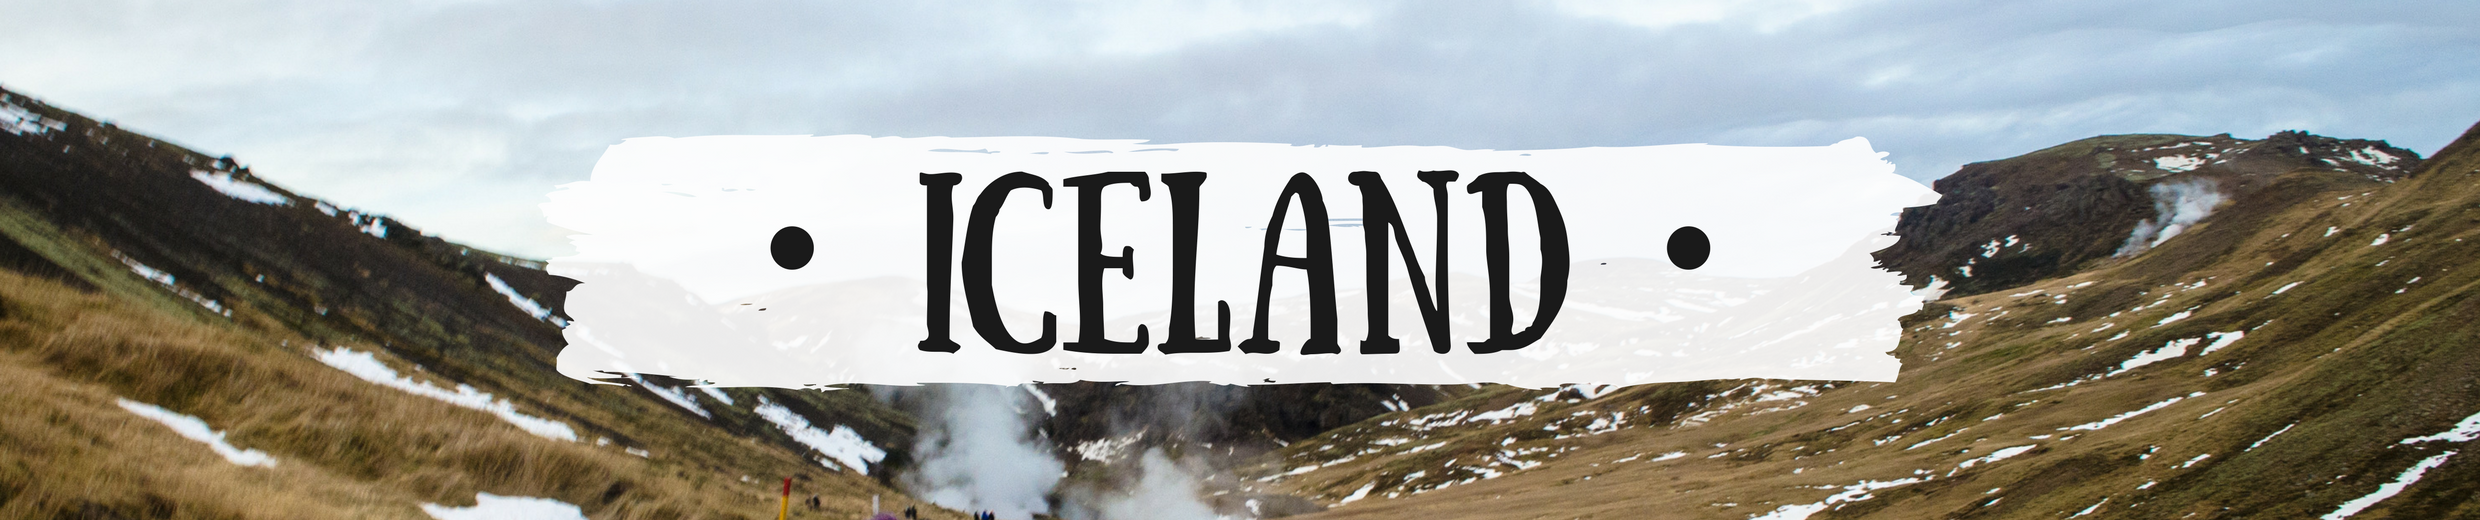 ICELAND.png